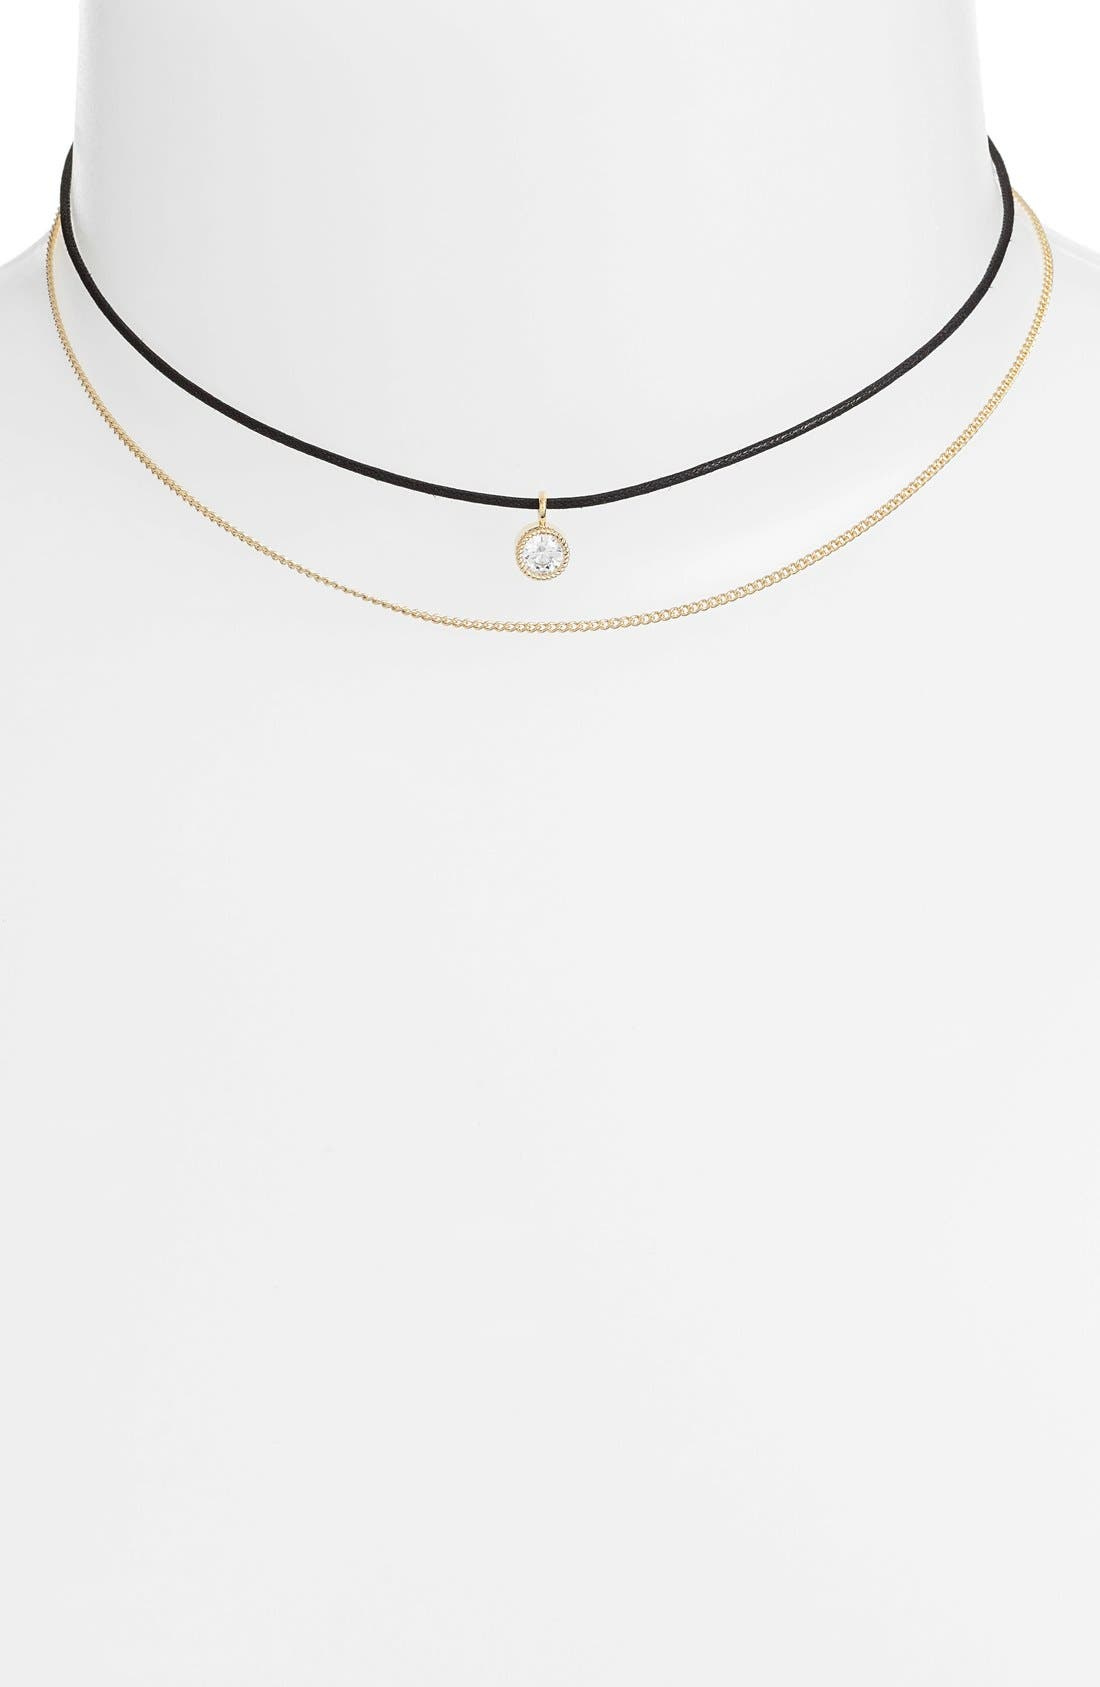 JULES SMITH 'Merci' Choker Necklace